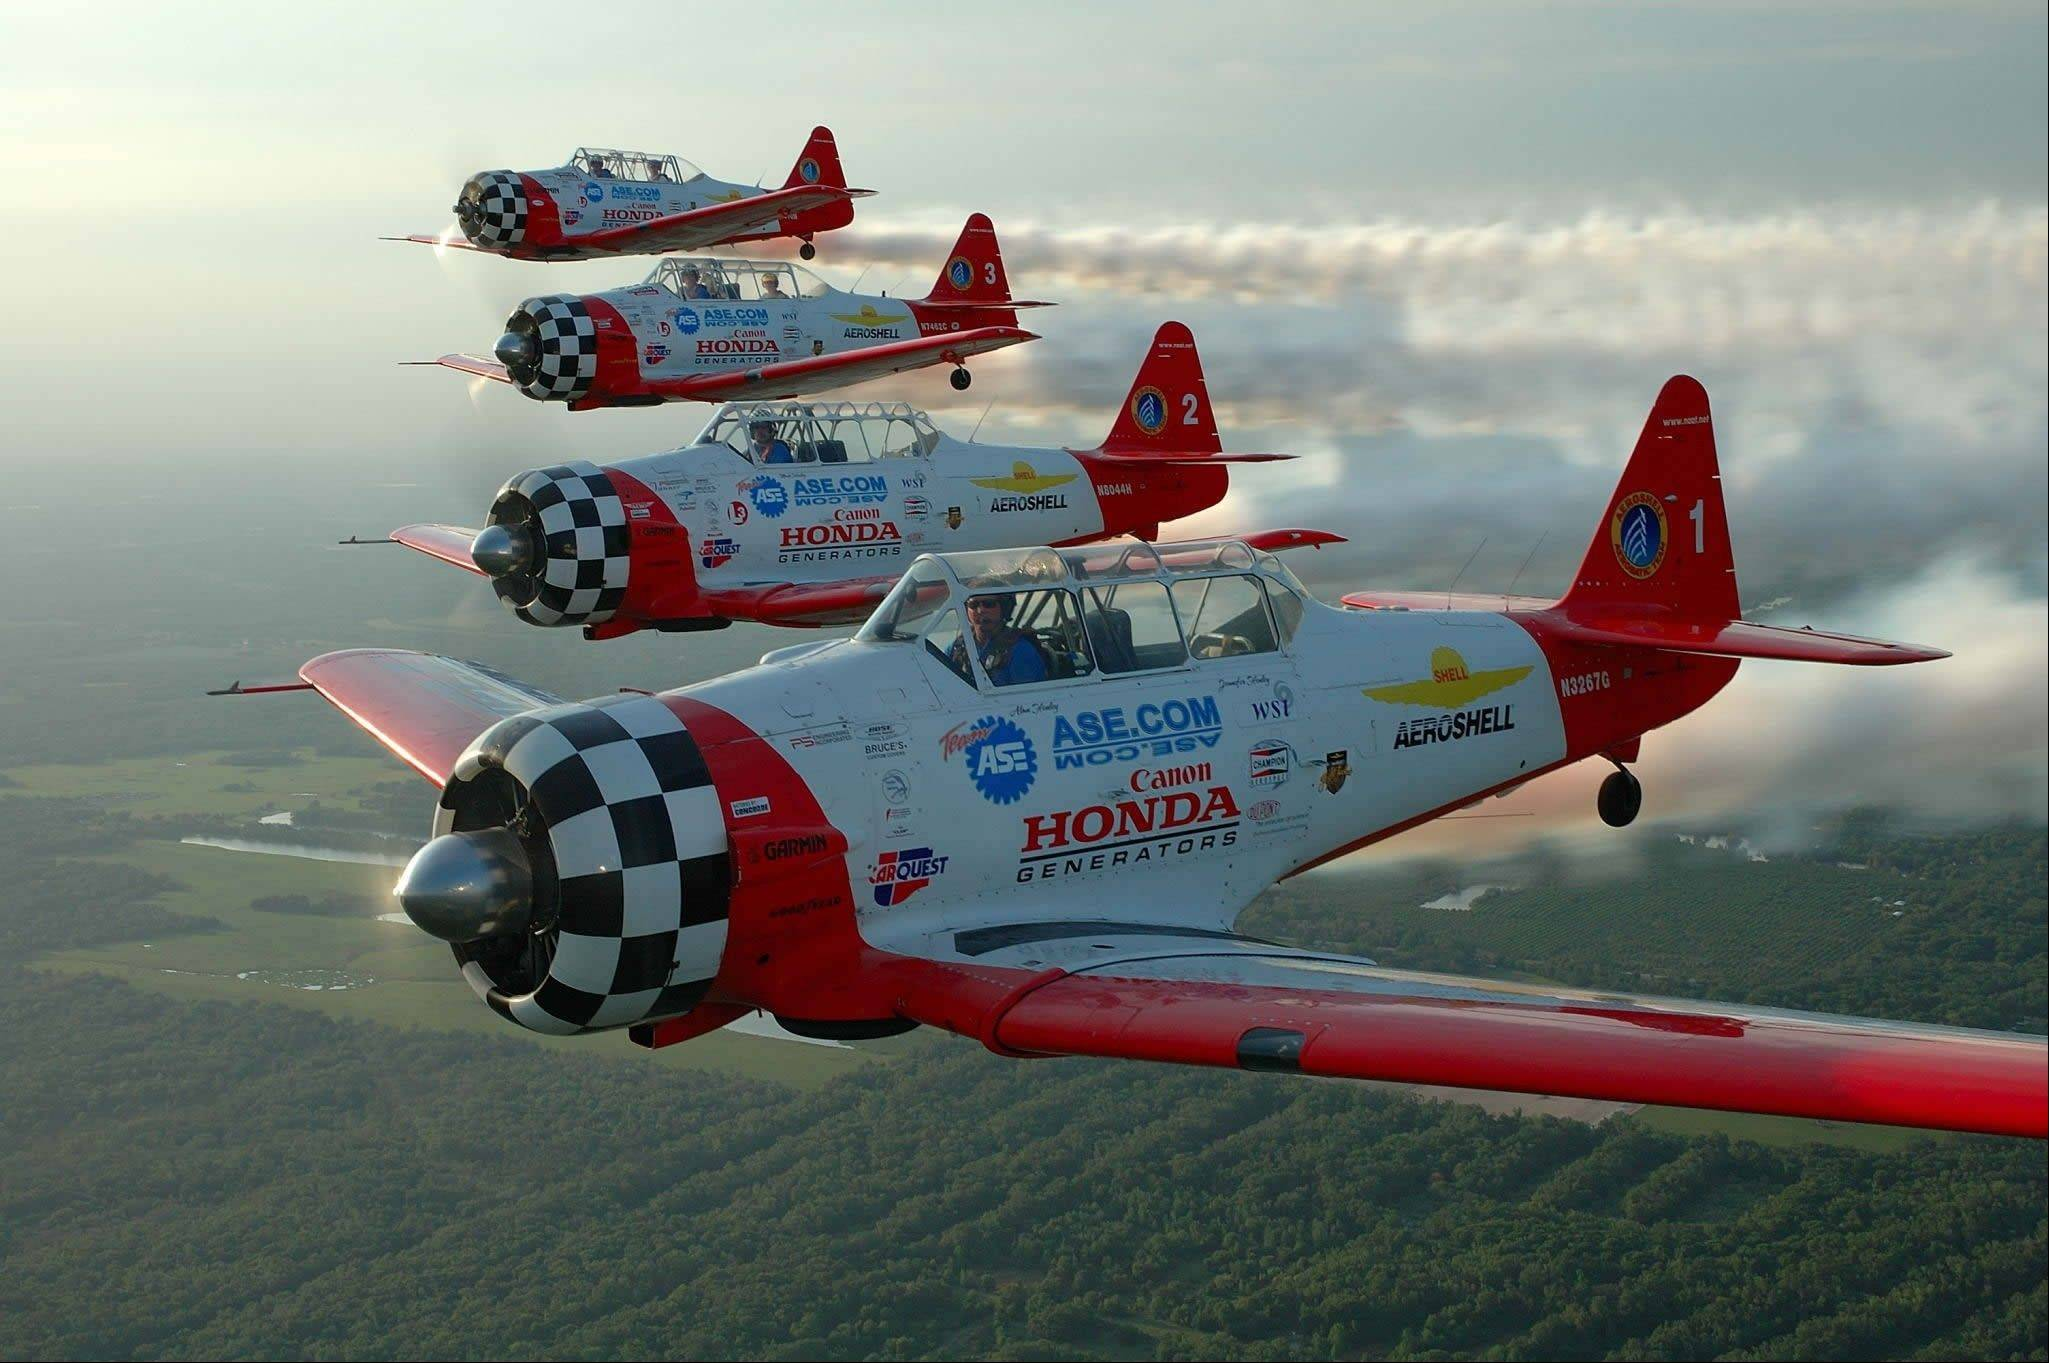 Aeroshell planes will entertain the crowds for the annual Chicago Air & Water Show this weekend.